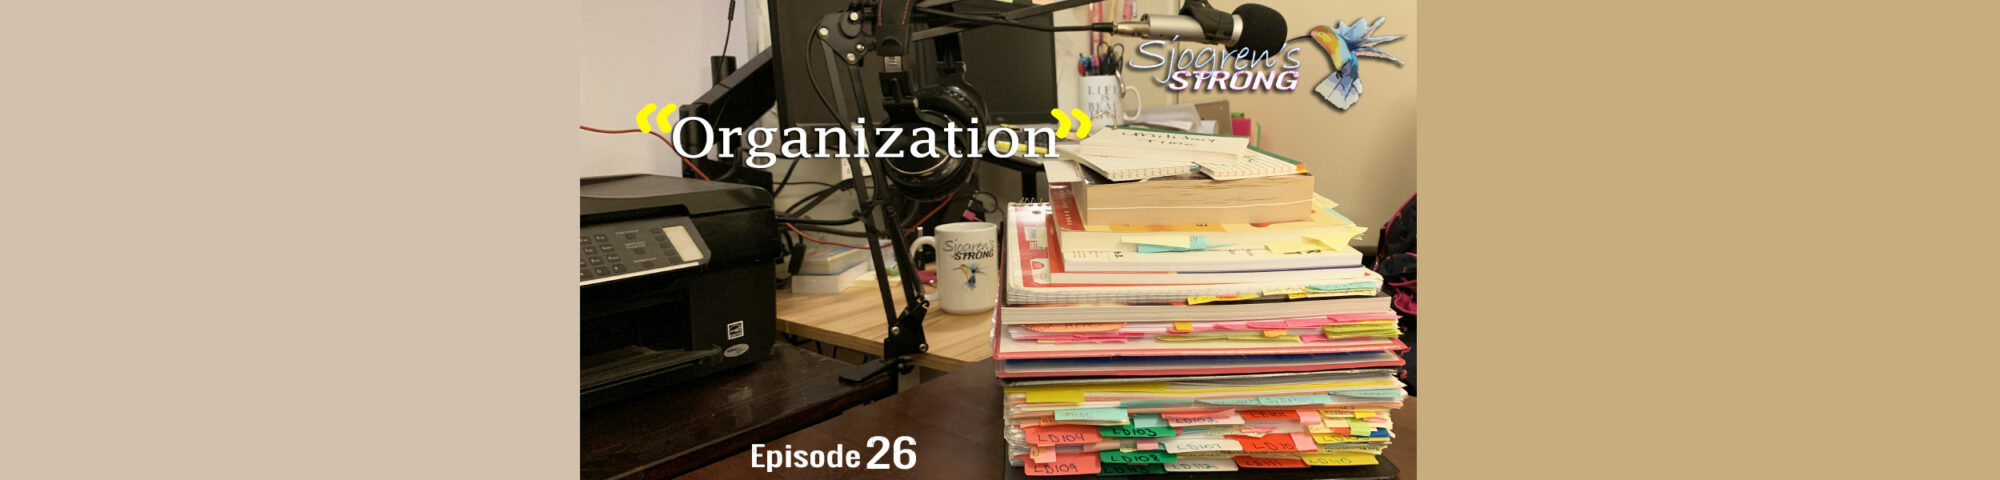 Sjogren's Strong Episode 26, Organization